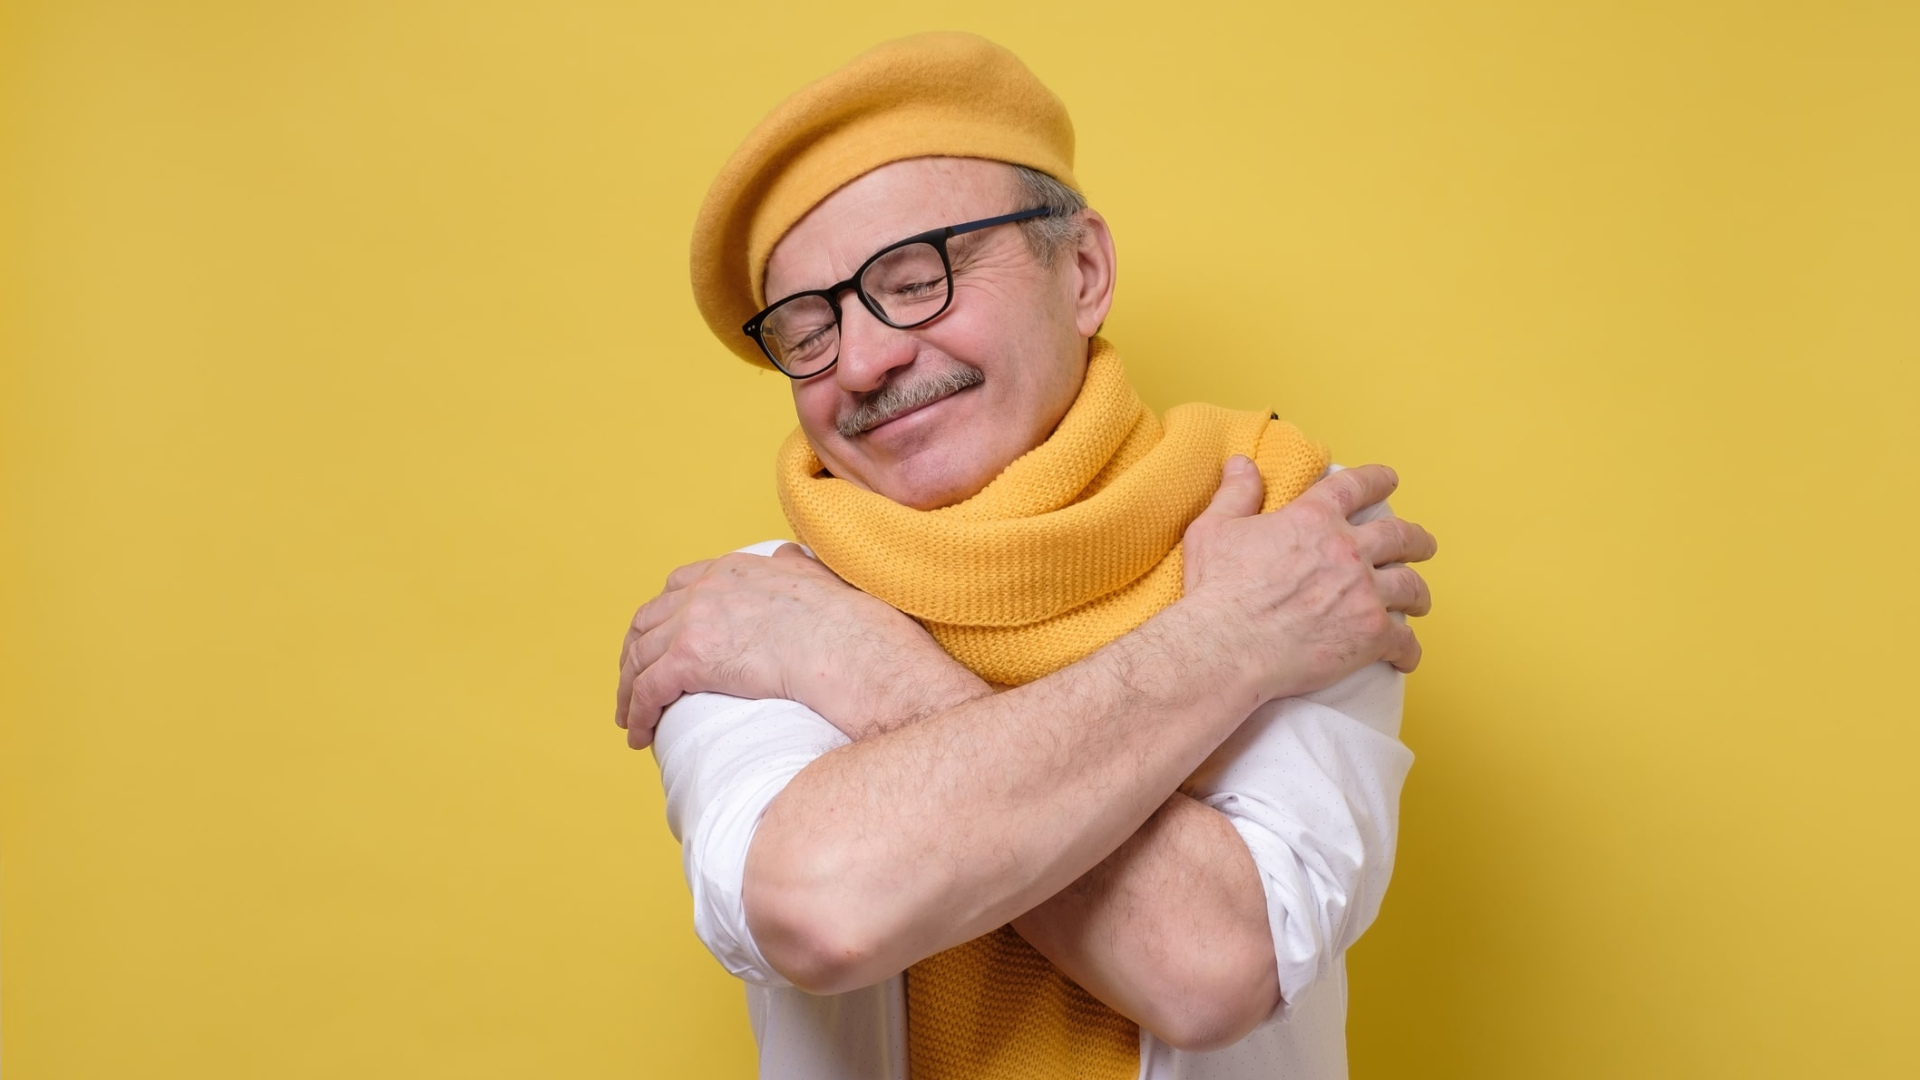 older man hugging himself happily wearing knitted hat and scarf